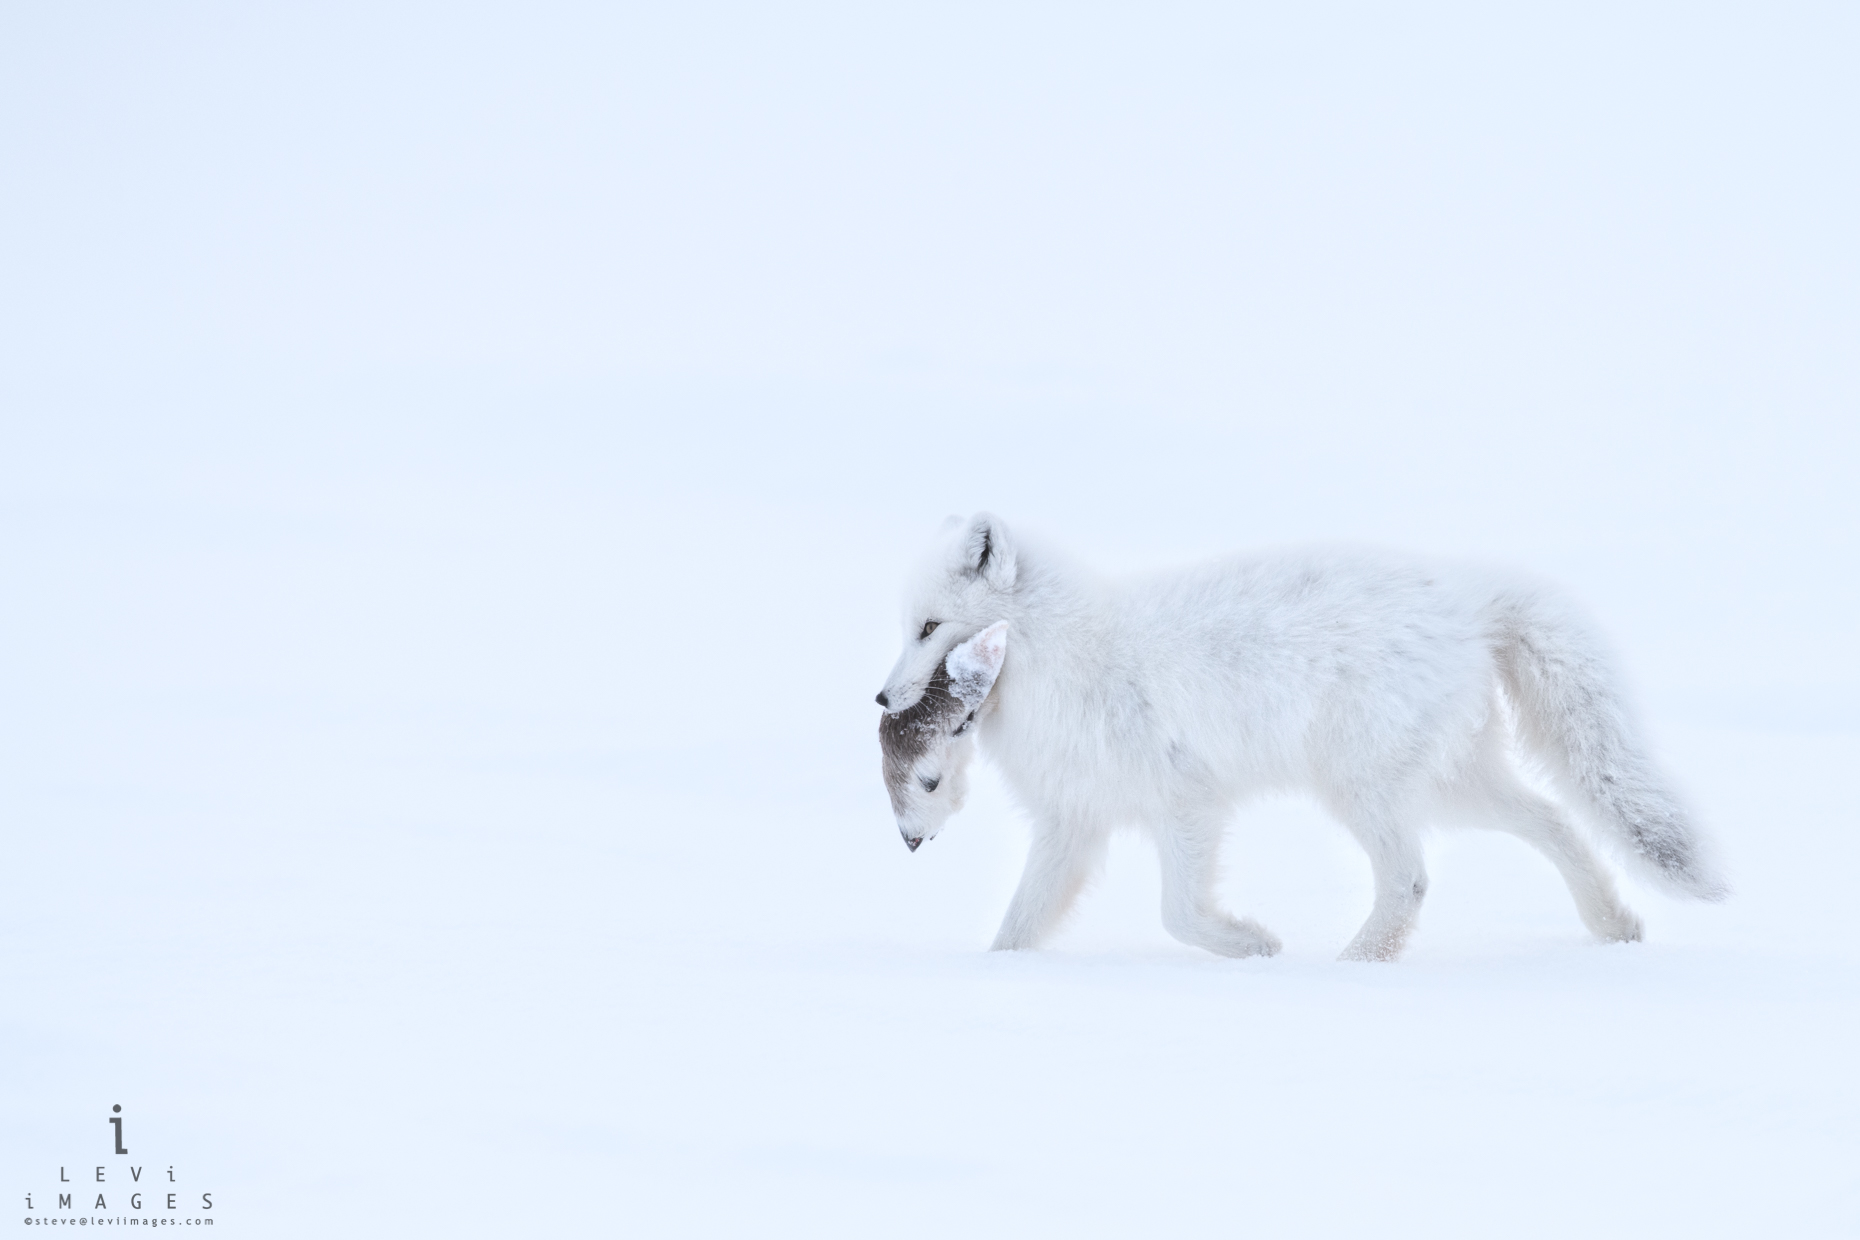 Arctic fox (Vulpes lagopus) in winter carrying  Caribou hoof in mouth. Wapusk National Park, Manitoba, Canada